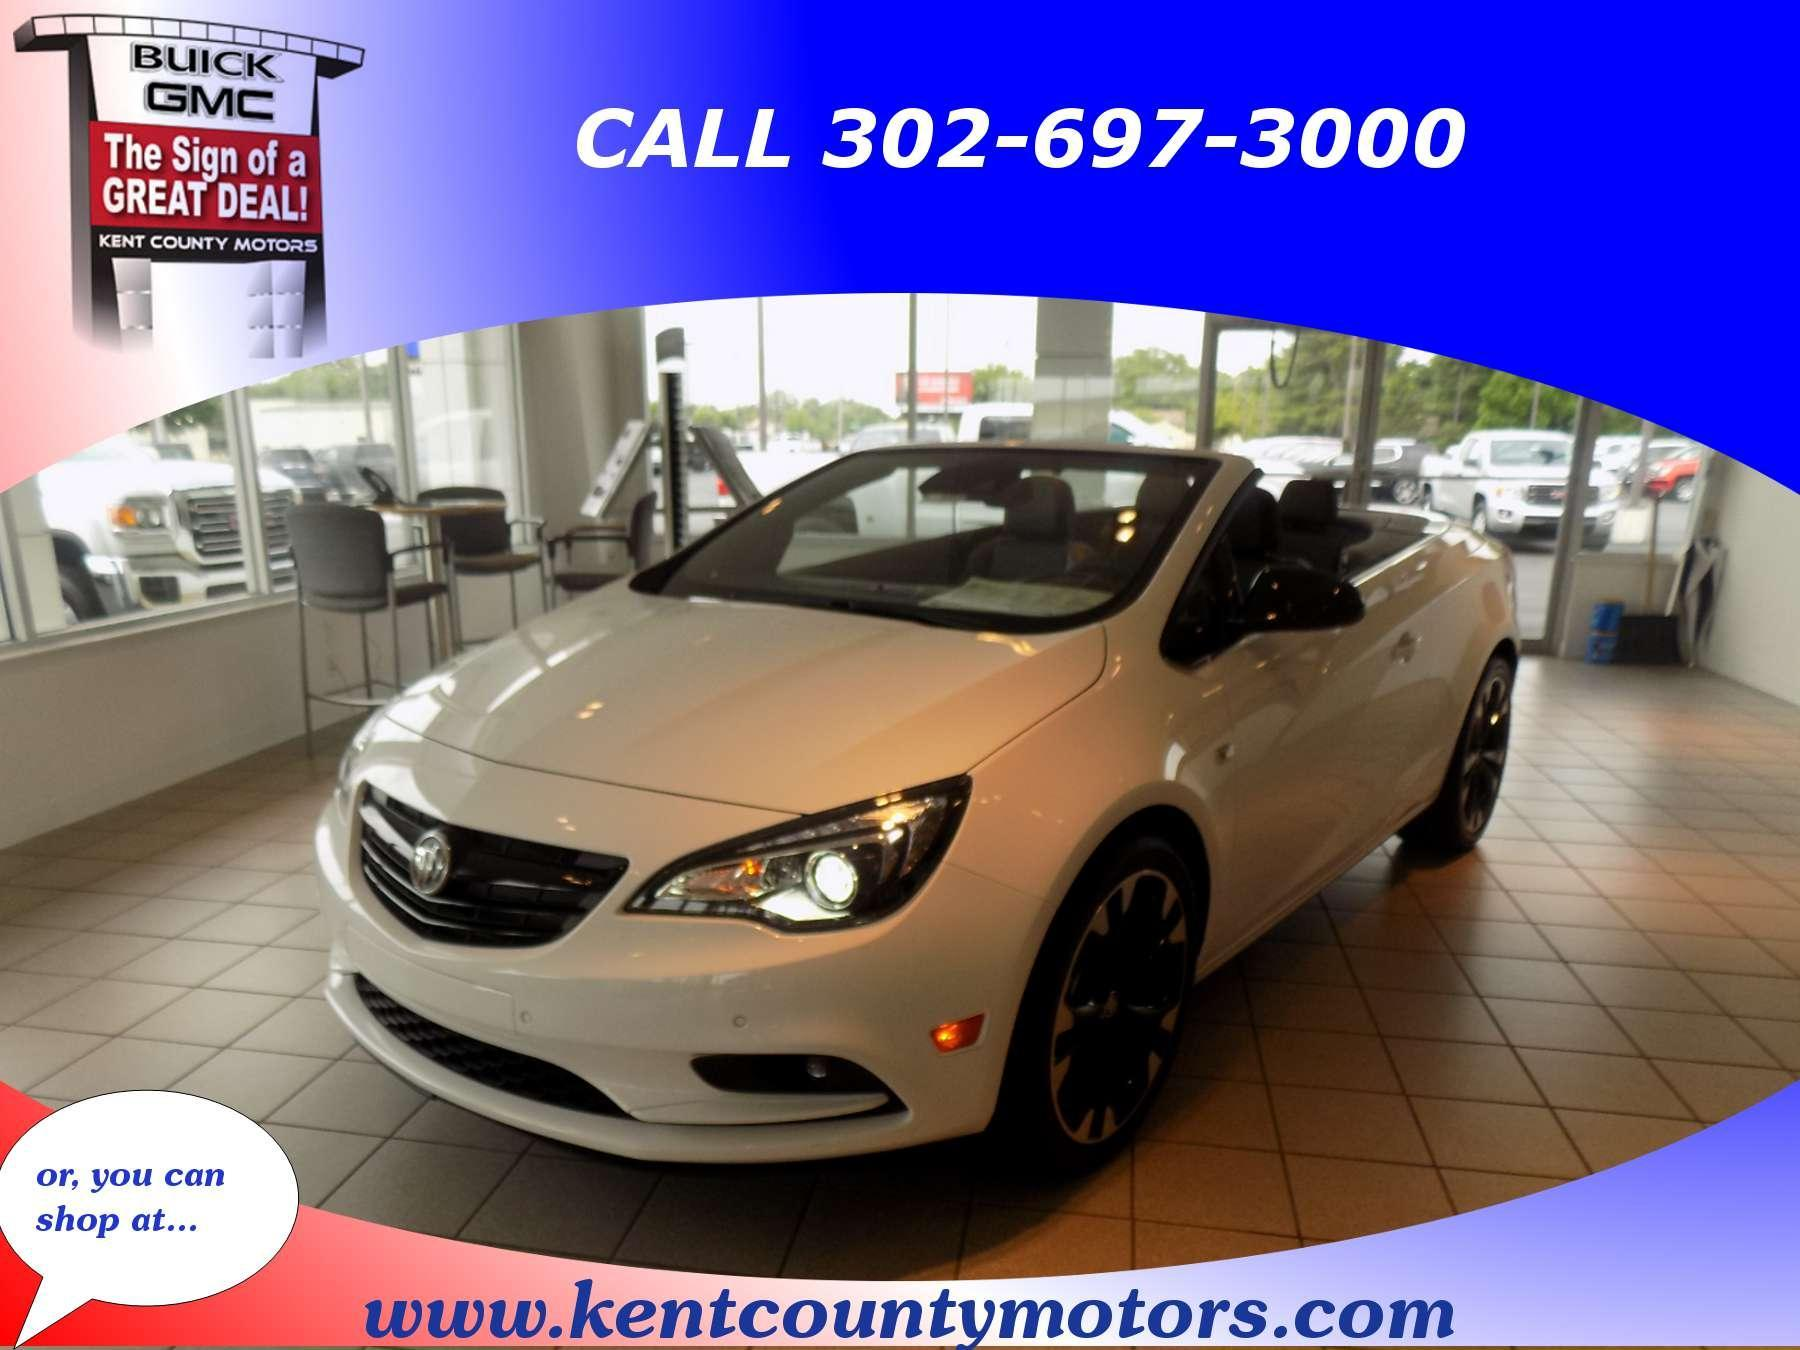 Car for Sale Kent Inspirational New Used Cars for Sale In Dover De Kent County Motors